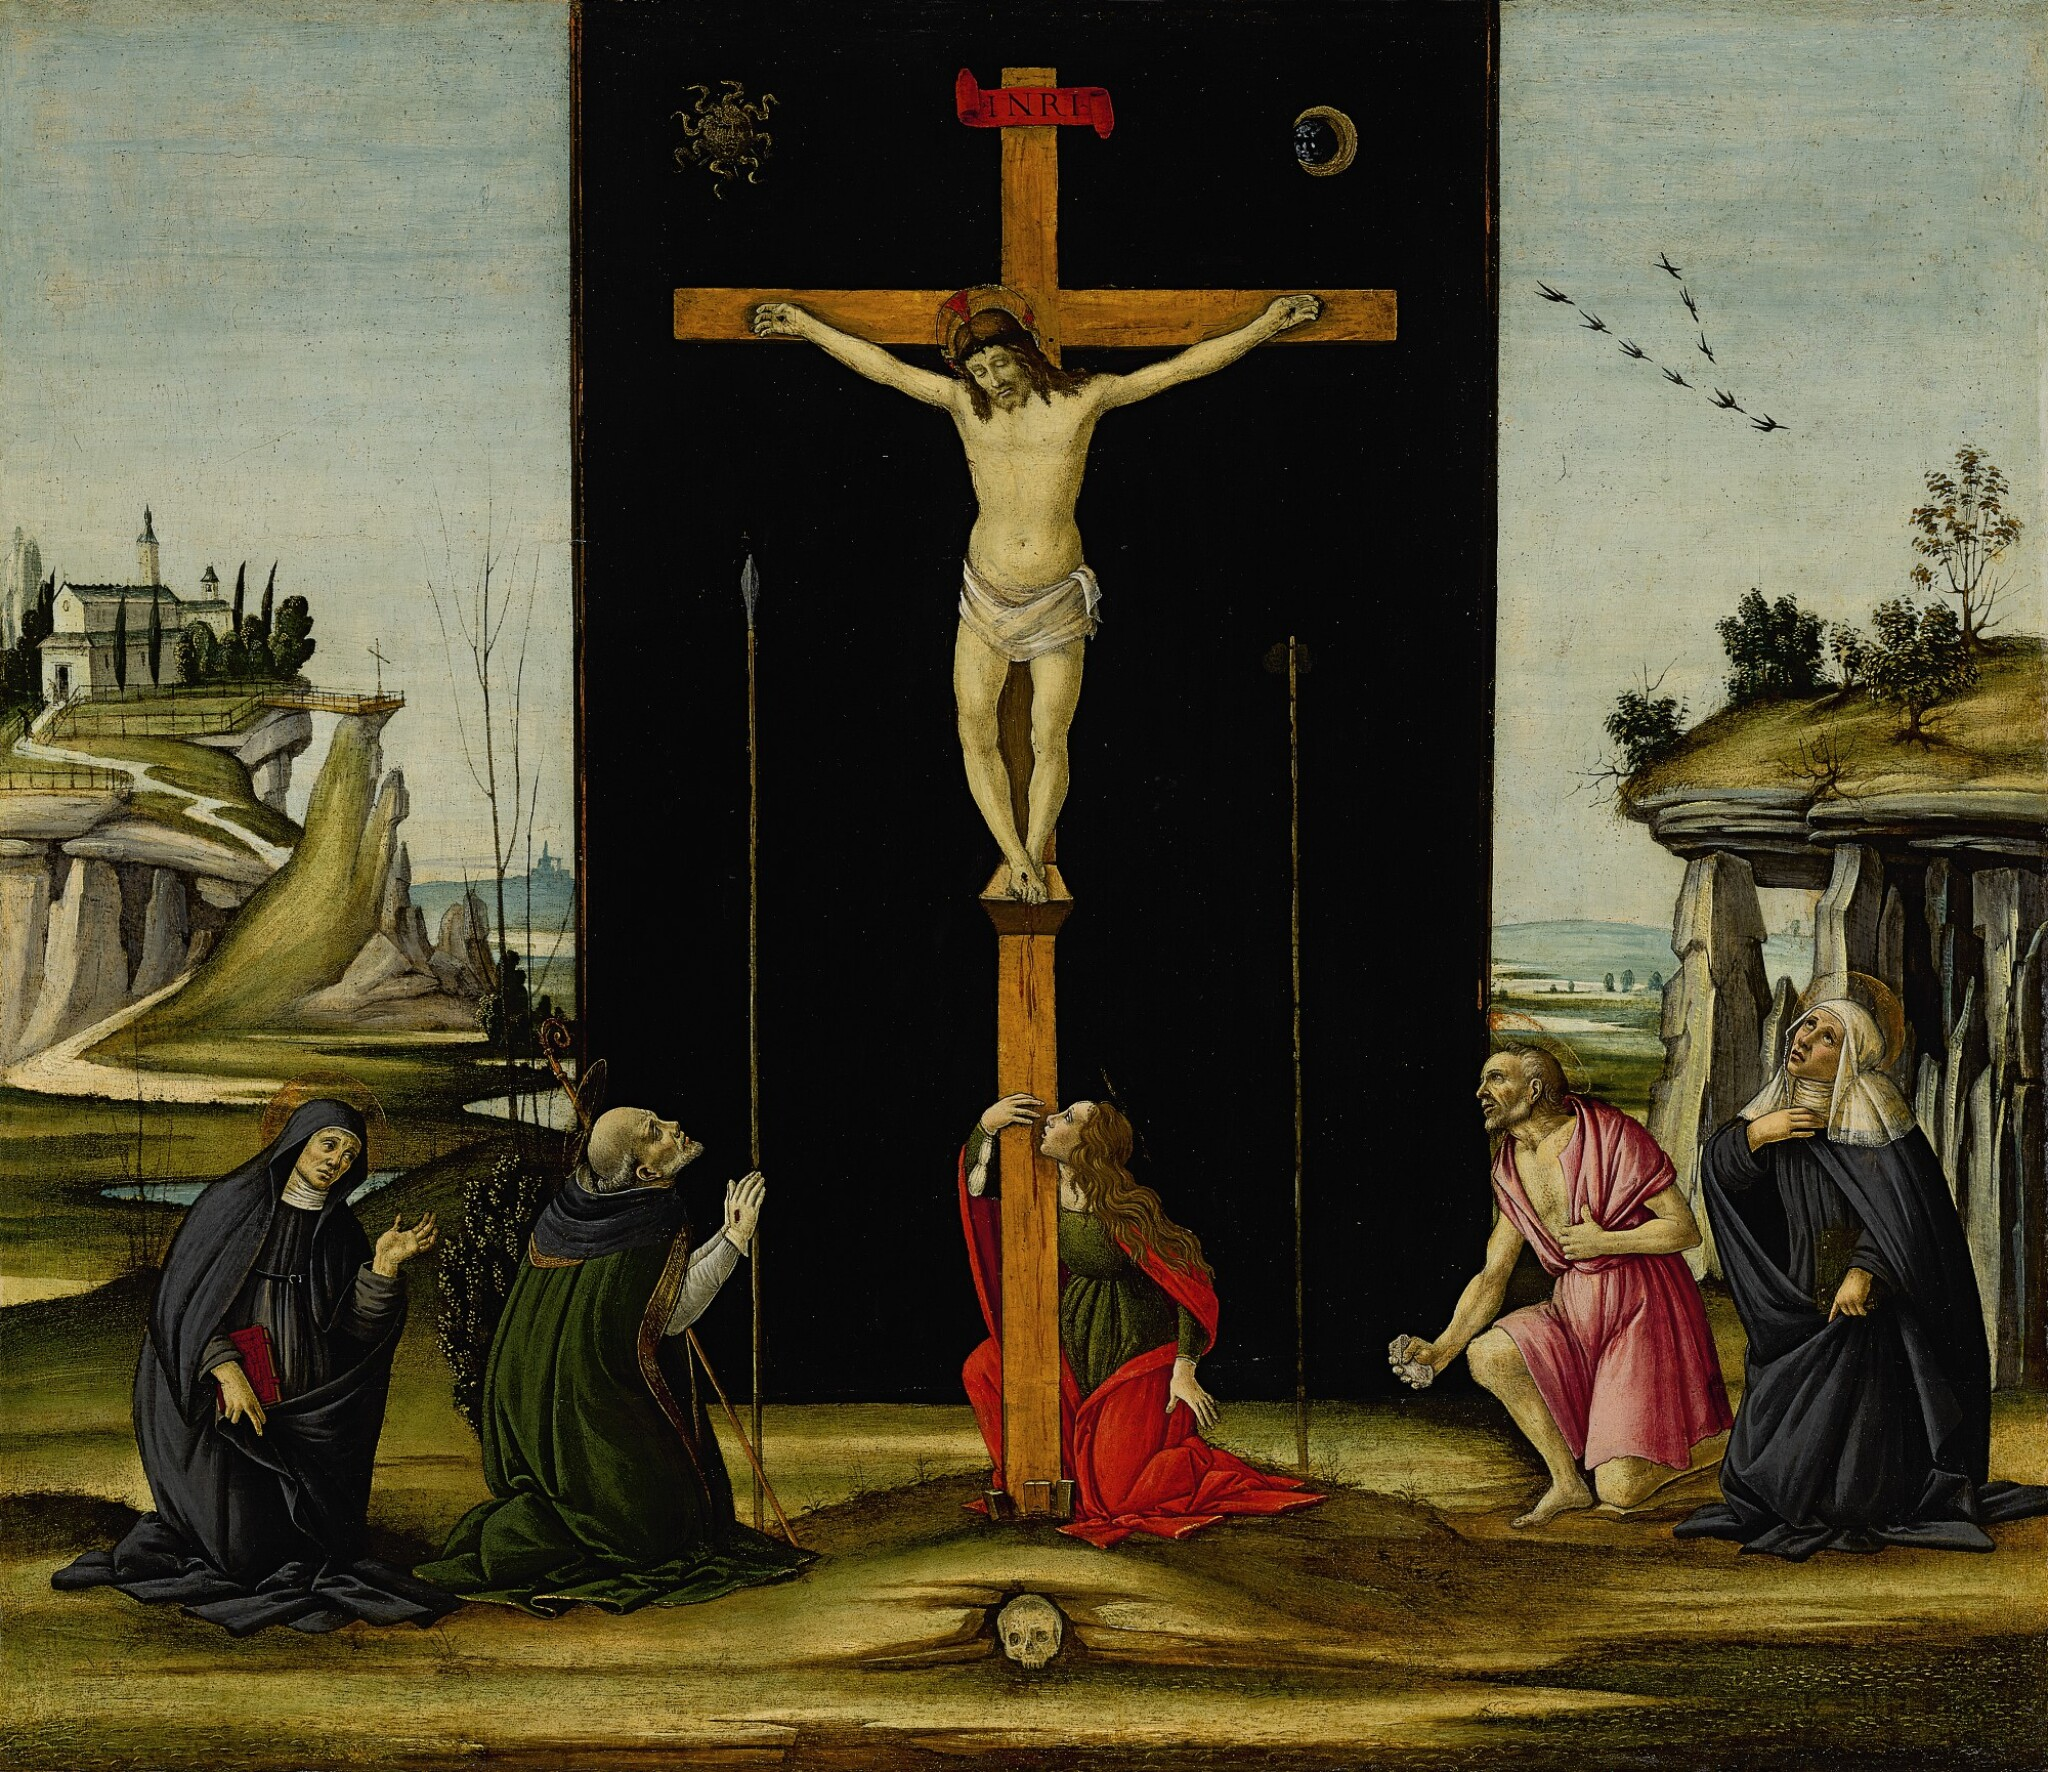 View full screen - View 1 of Lot 5.  Christ on the Cross adored by Saints Monica, Augustine, Mary Magdalen, Jerome and Bridget of Sweden | 《聖莫尼卡、聖奧古斯丁、聖瑪利亞・瑪達肋納、聖傑羅姆及瑞典聖畢哲敬拜十字架上的耶穌》.